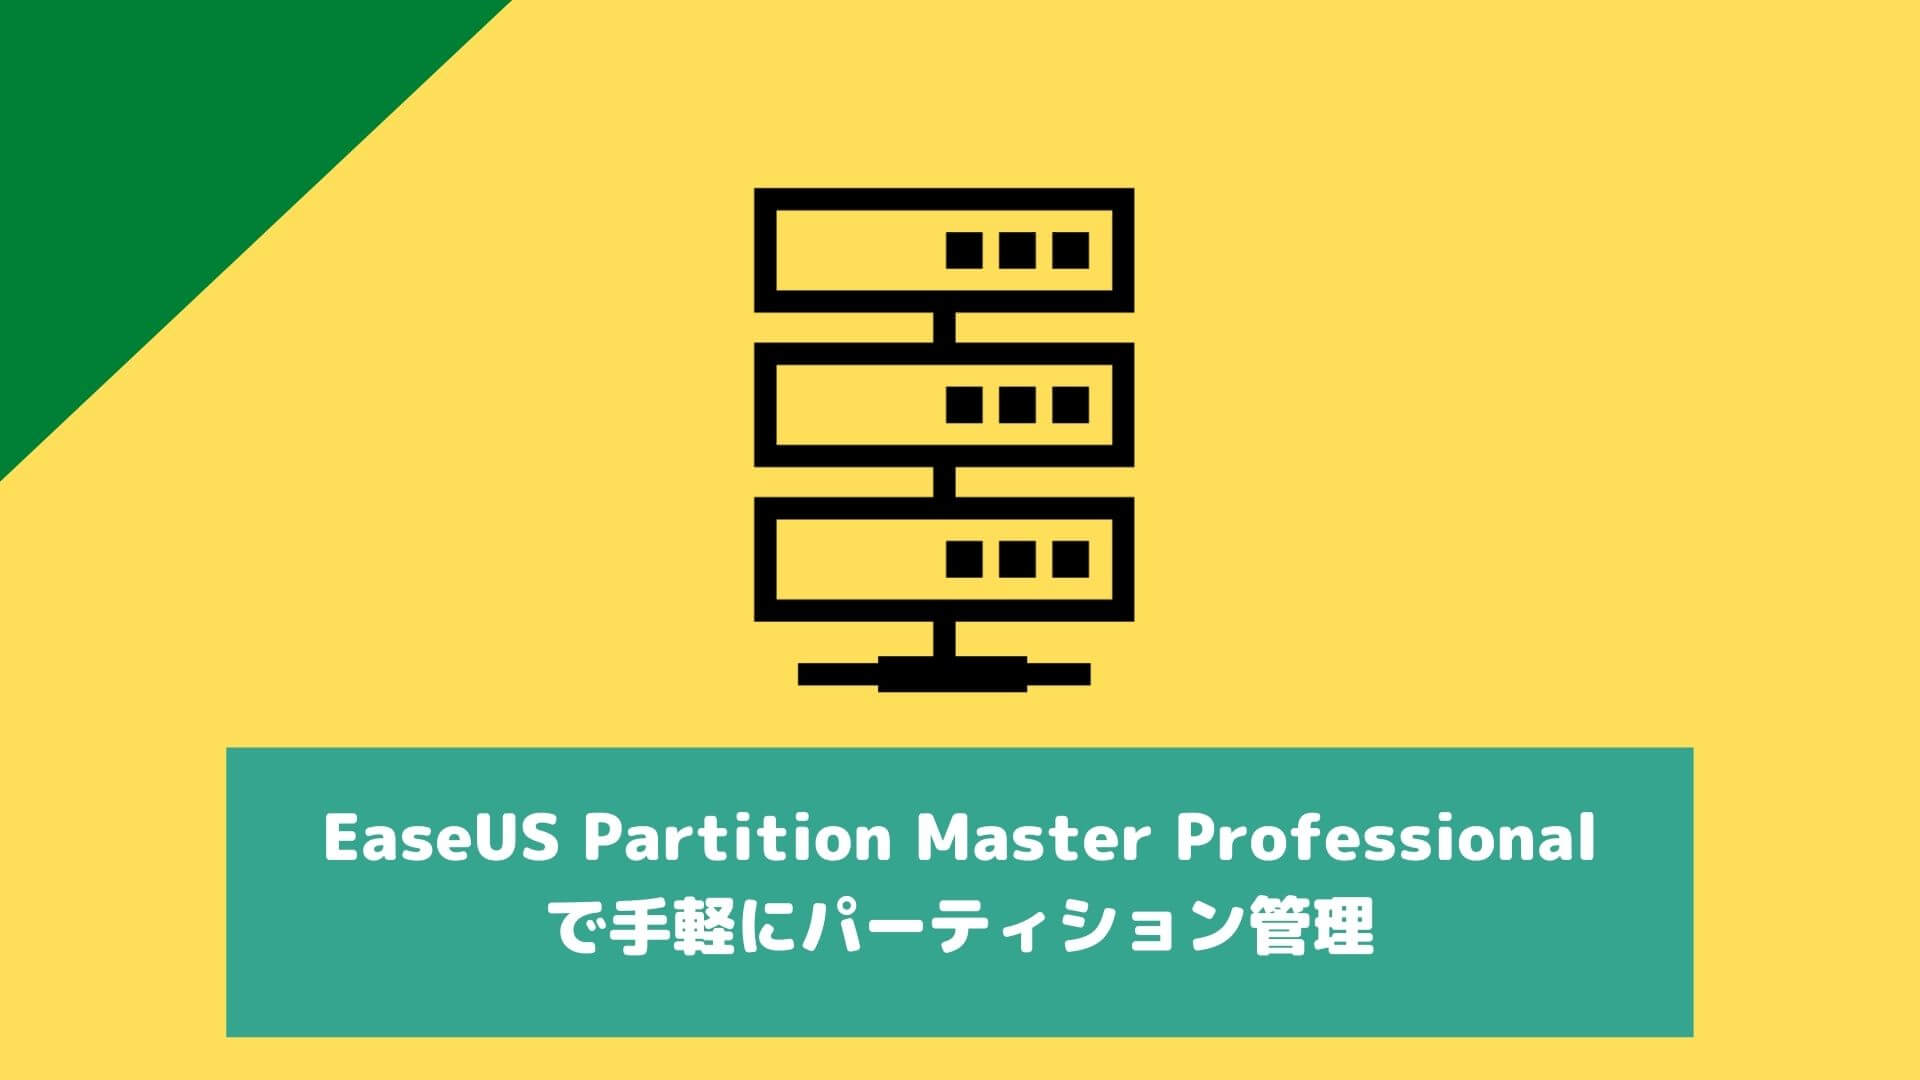 EaseUS Partition Master Professionalで手軽にパーティション管理